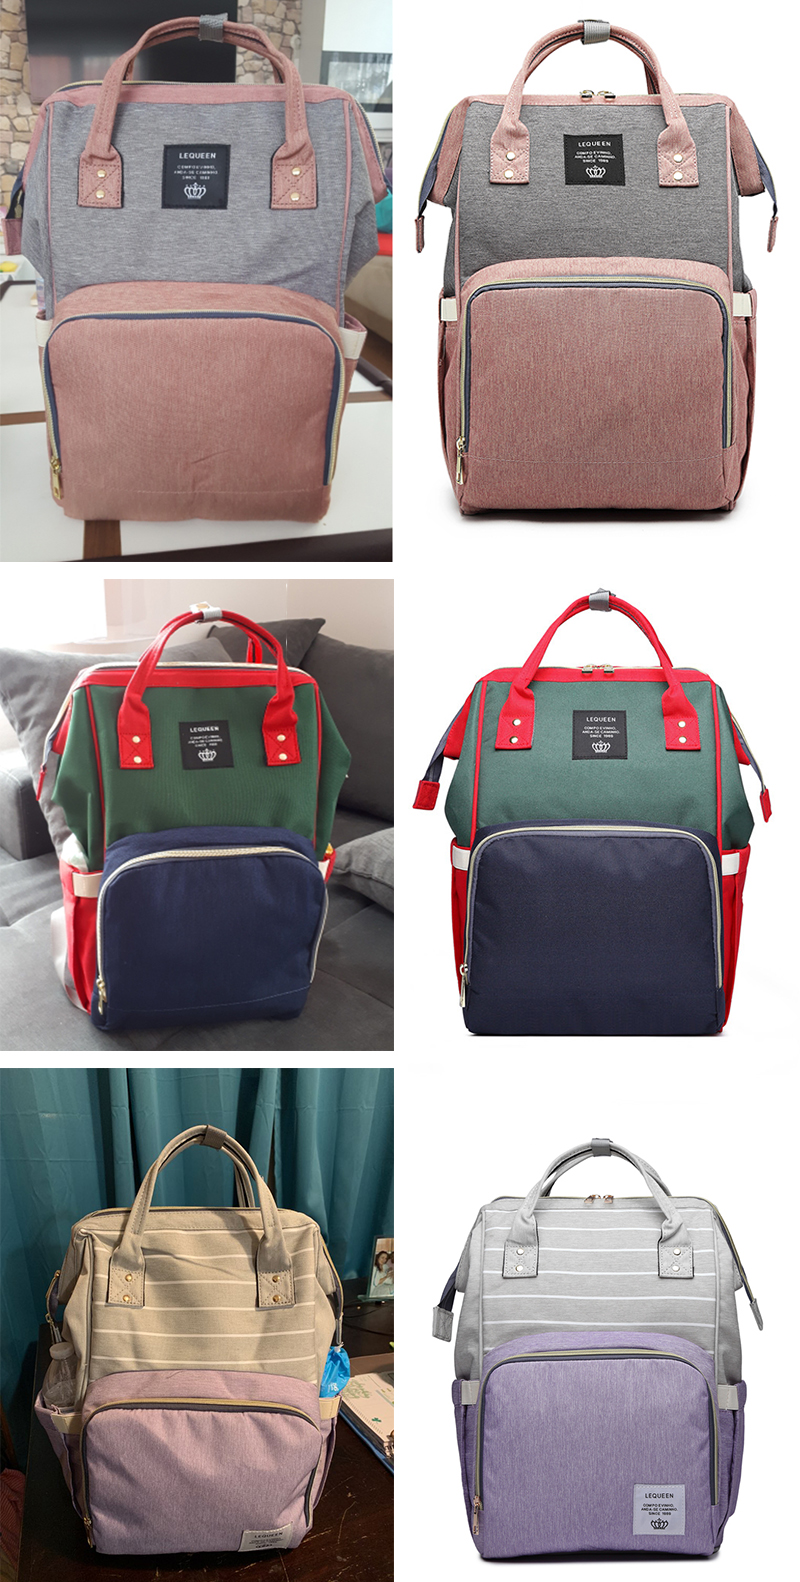 HTB1ETqfUNTpK1RjSZR0q6zEwXXaS Lequeen Mommy Diaper Bag Baby Mummy Carriage Backpack Mother Changing Bag Maternity Bag Care Stroller Large Capacity Nappy Bag